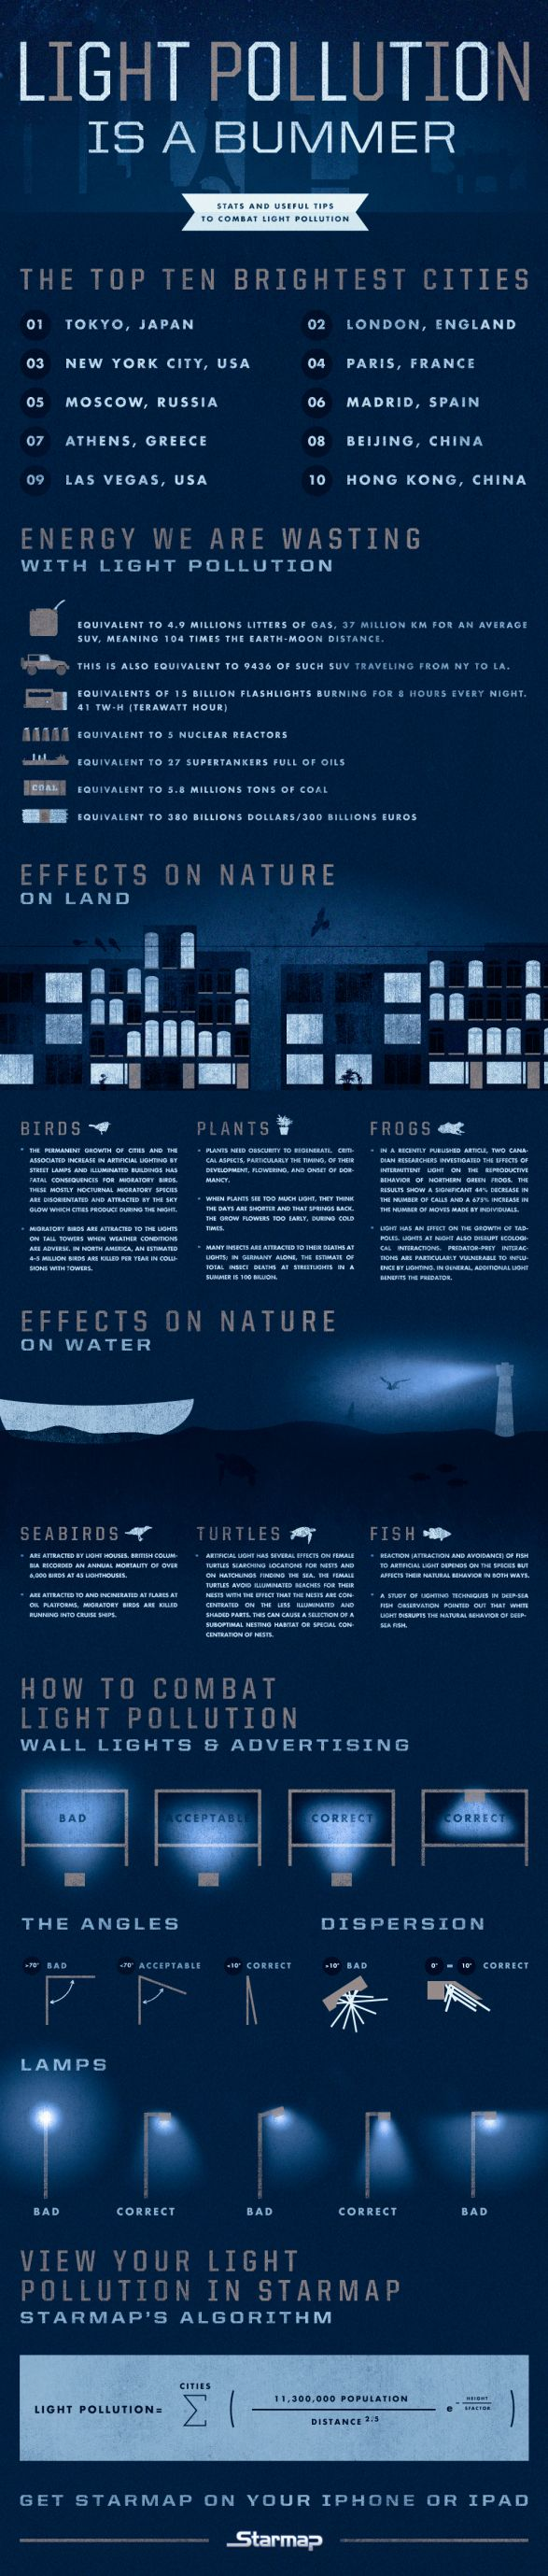 Are Man-Made Lights Are Destroying The Earth? #infographic via @bi_sci Ashley Lutz